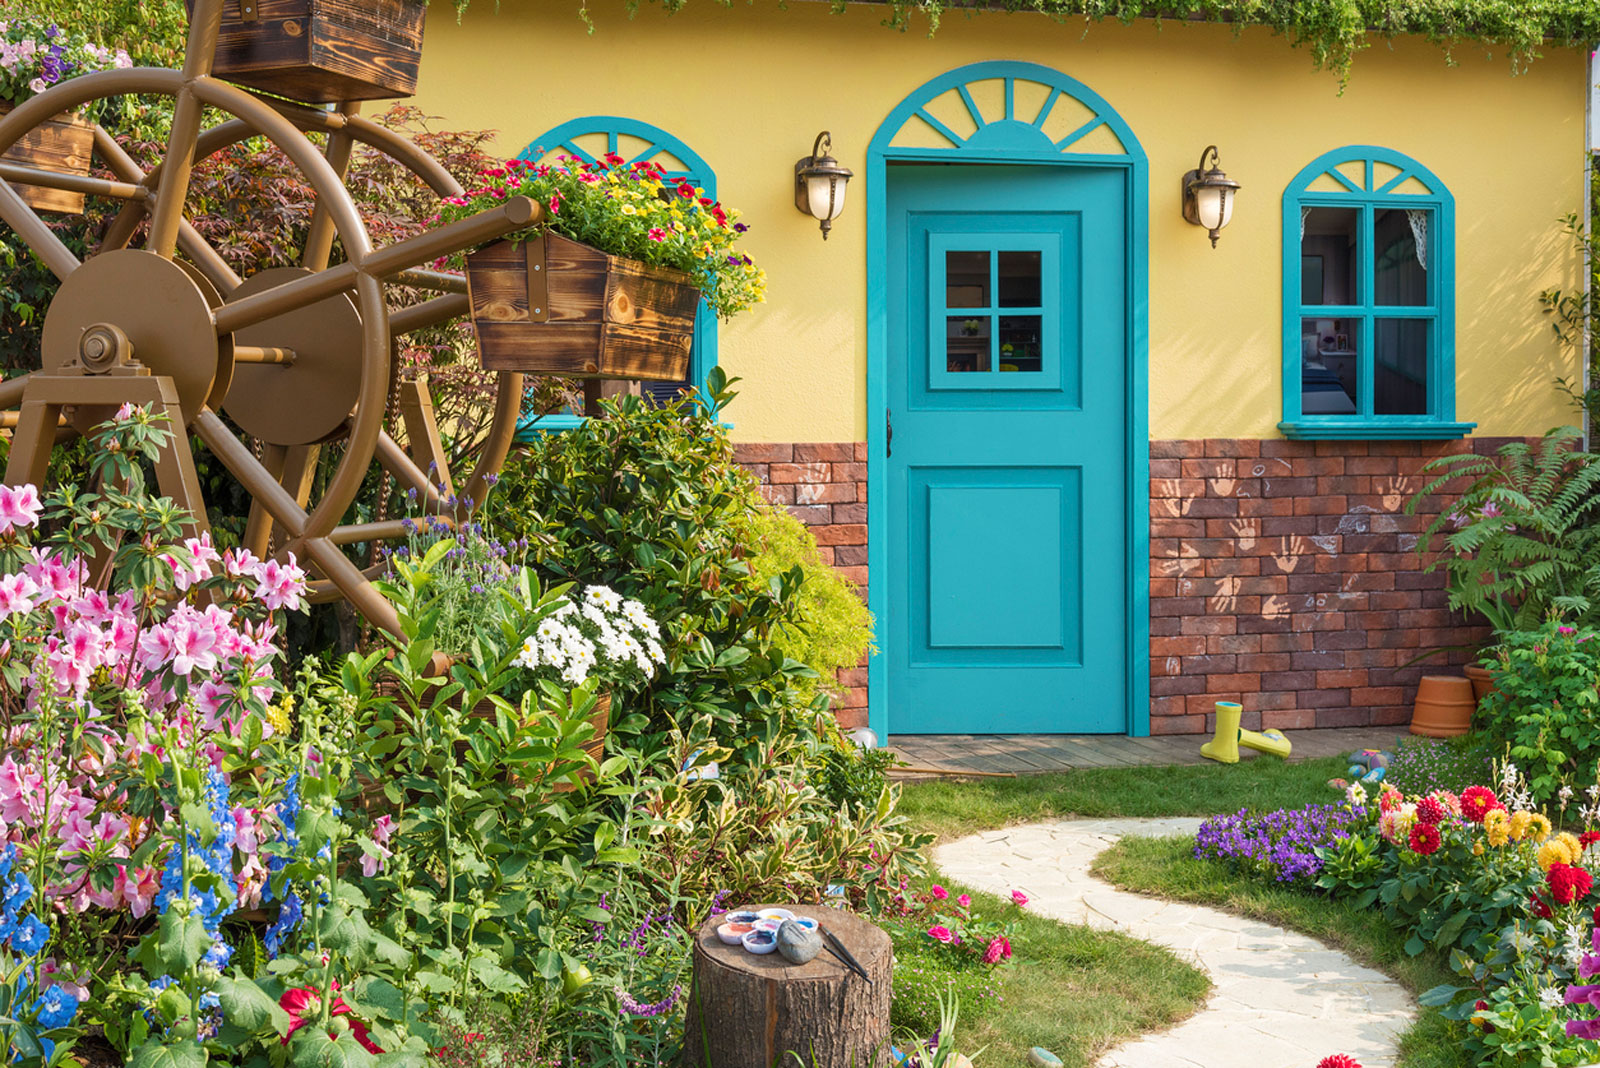 Front Yard Landscaping Tips Creative Ways To Increase Your Home S Curb Appeal